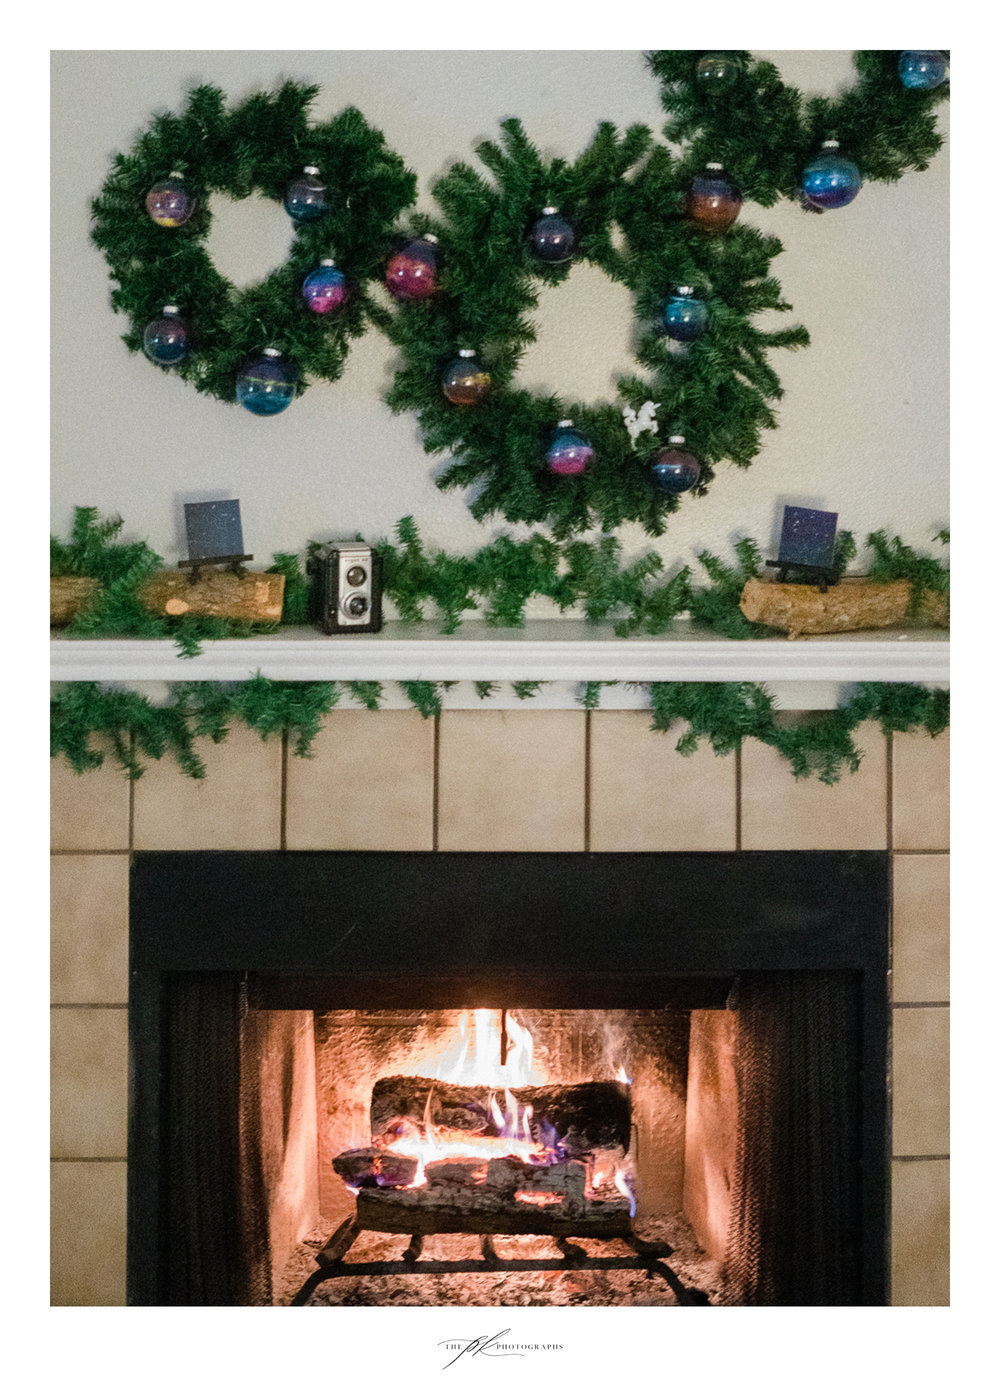 Fireplace decorated for the holiday season.